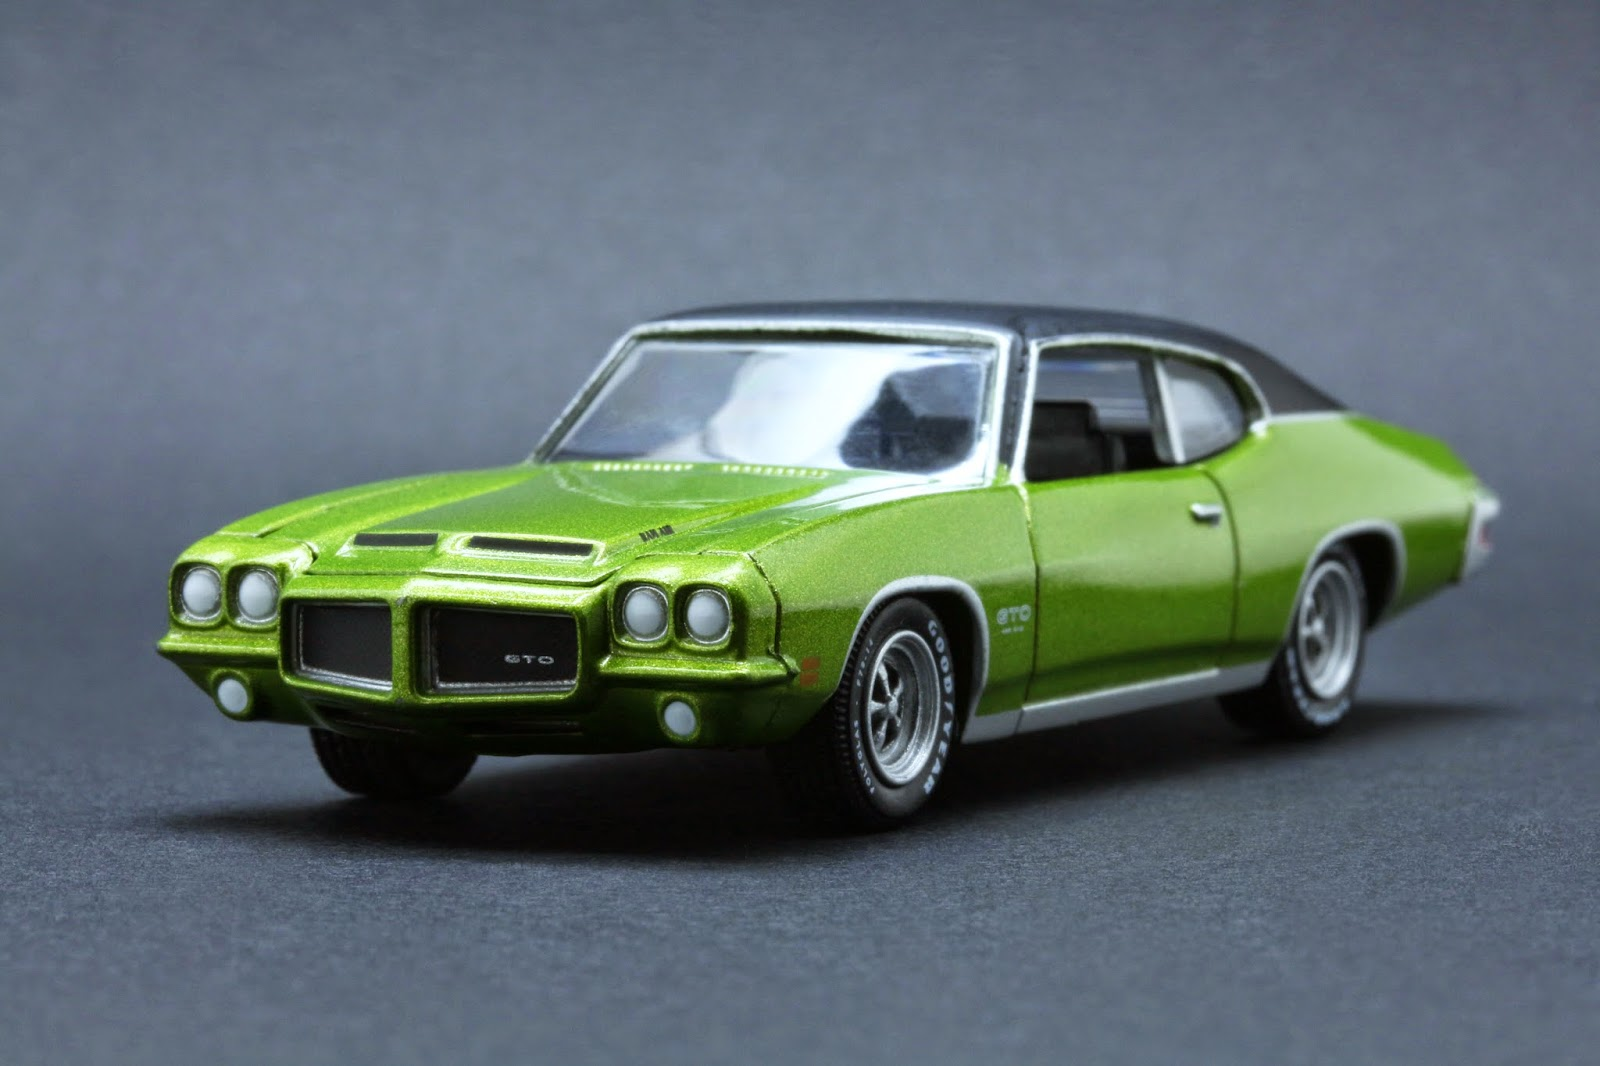 ede7ba16dbfe 1 64 Scale Diecast from Greenlight Route 66 U.S.A   15 Diecast Car  Collector Pack